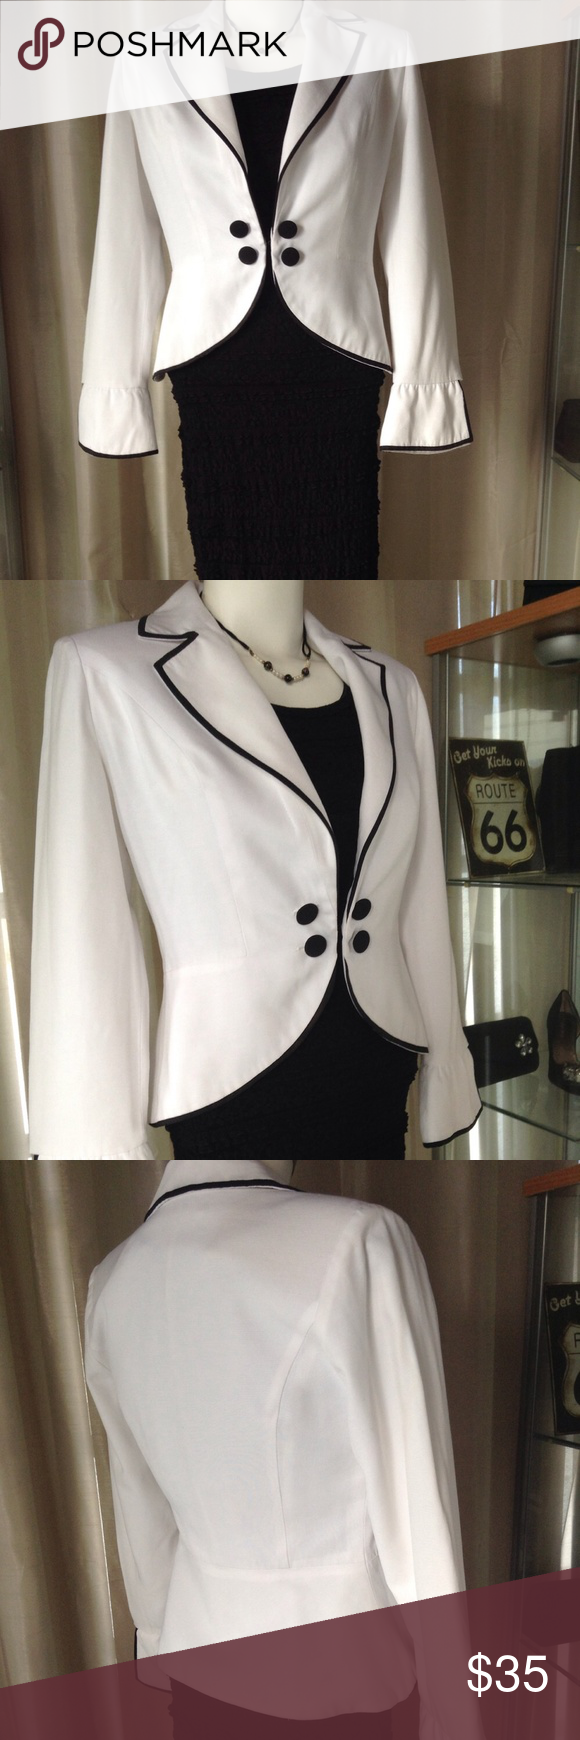 VINTAGE WHITE PEPLUM JACKET WITH BLACK TRIM This is a basic but chic piece of vintage fashion. The jacket has 4 tuxedo type buttons as embellishments & a small hook closure & yes it does has small shoulder pads!  I love this over a simple black sheath dress to take you to an event as a light, figure flattering & stylish cover up! I find its best to avoid styling white with white due to the various shades. I added a simple vintage short necklace with white & black glass beads with enamel…